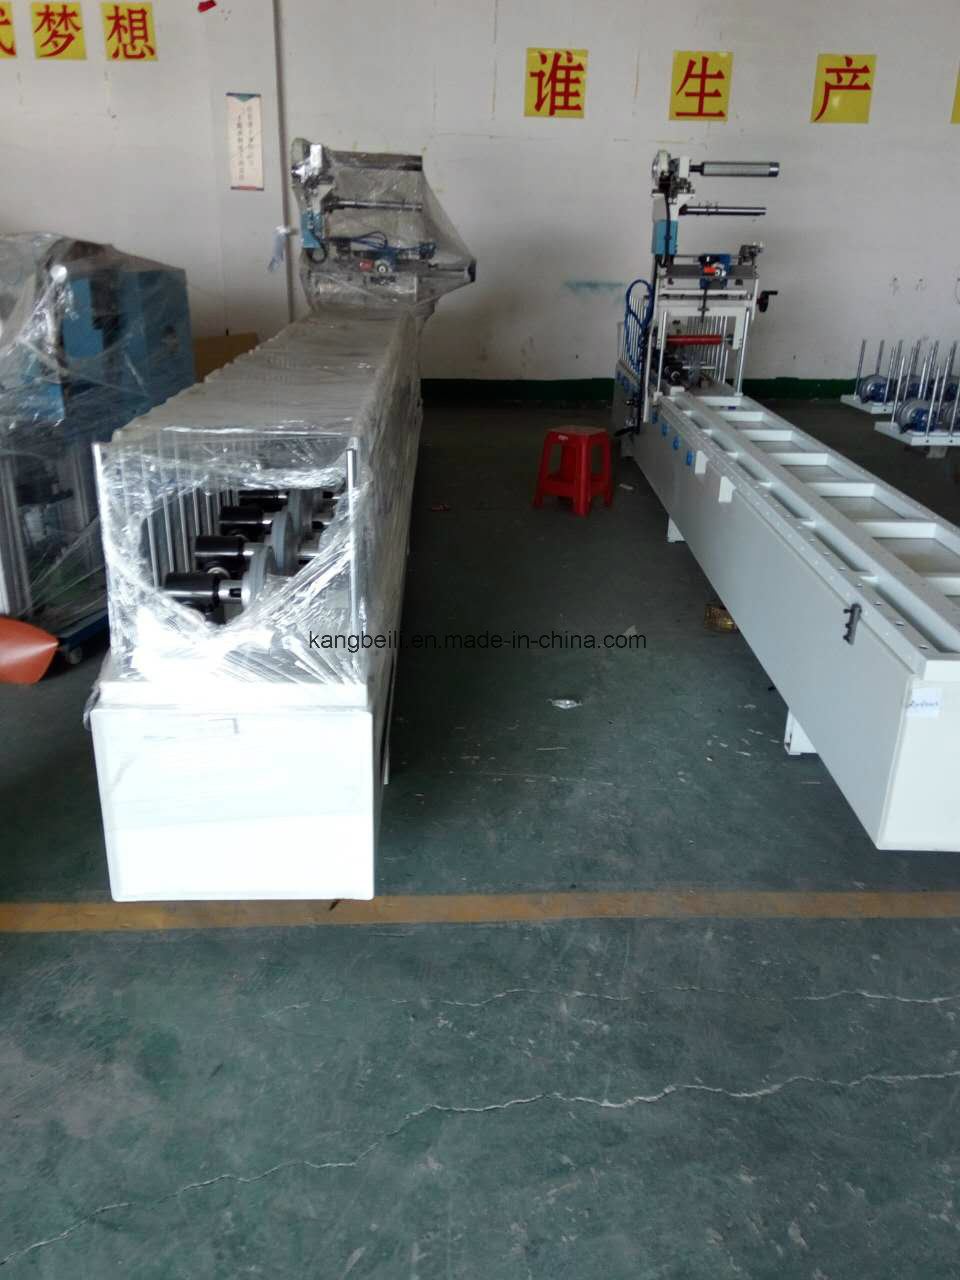 Cold Adhesive 600 TUV Certificated Mingde Brand Woodworking Wrapping Machine